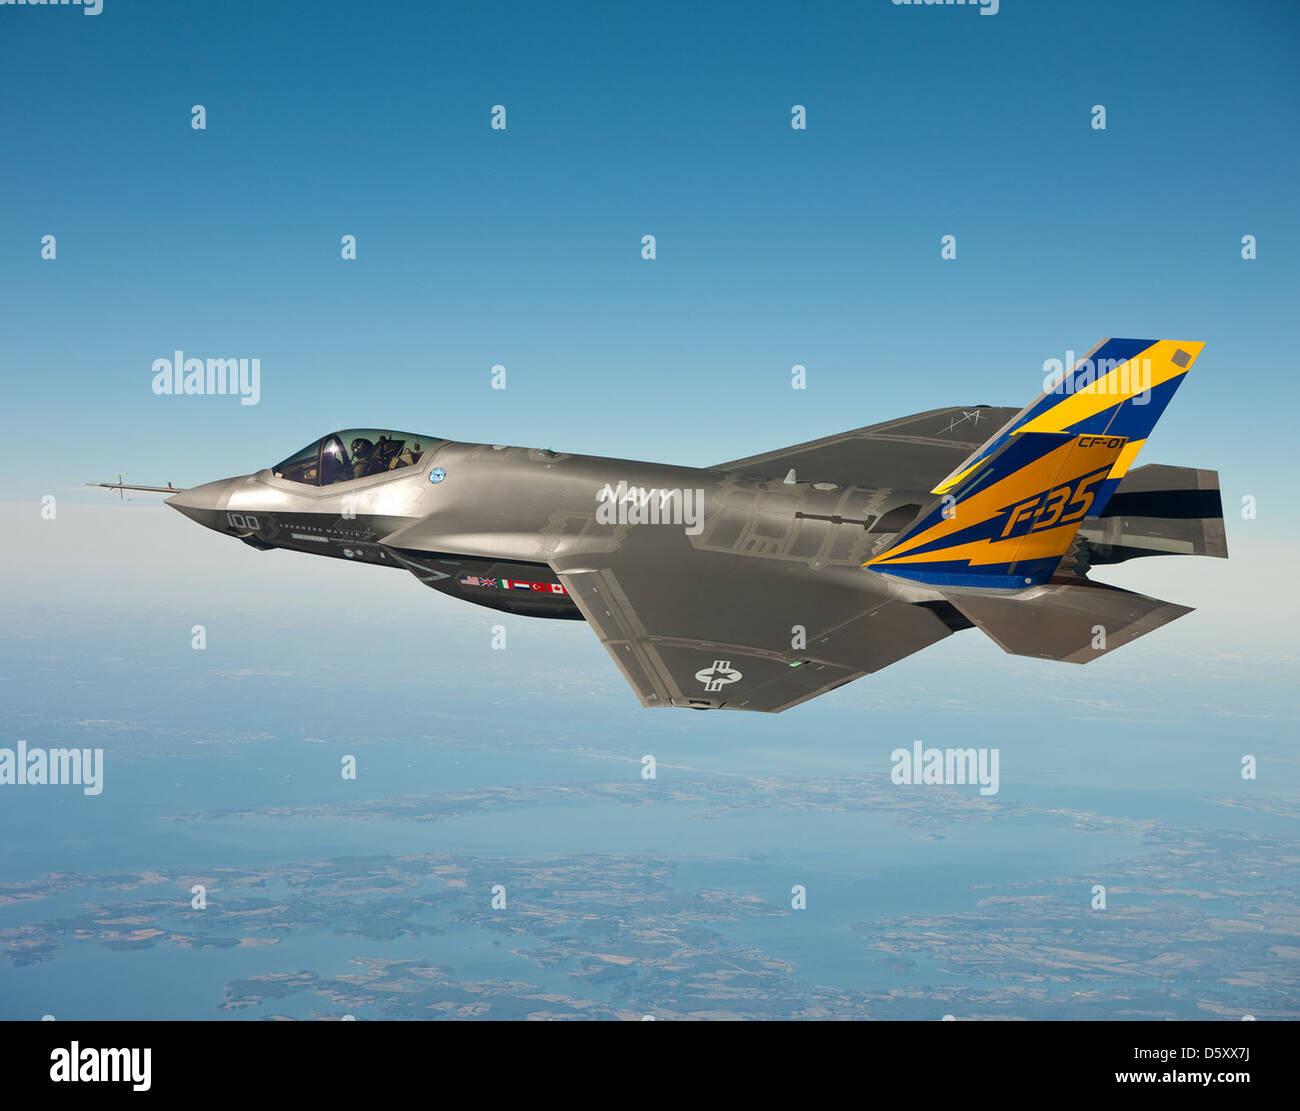 The U.S. Navy variant of the F-35 Joint Strike Fighter, the F-35C. - Stock Image